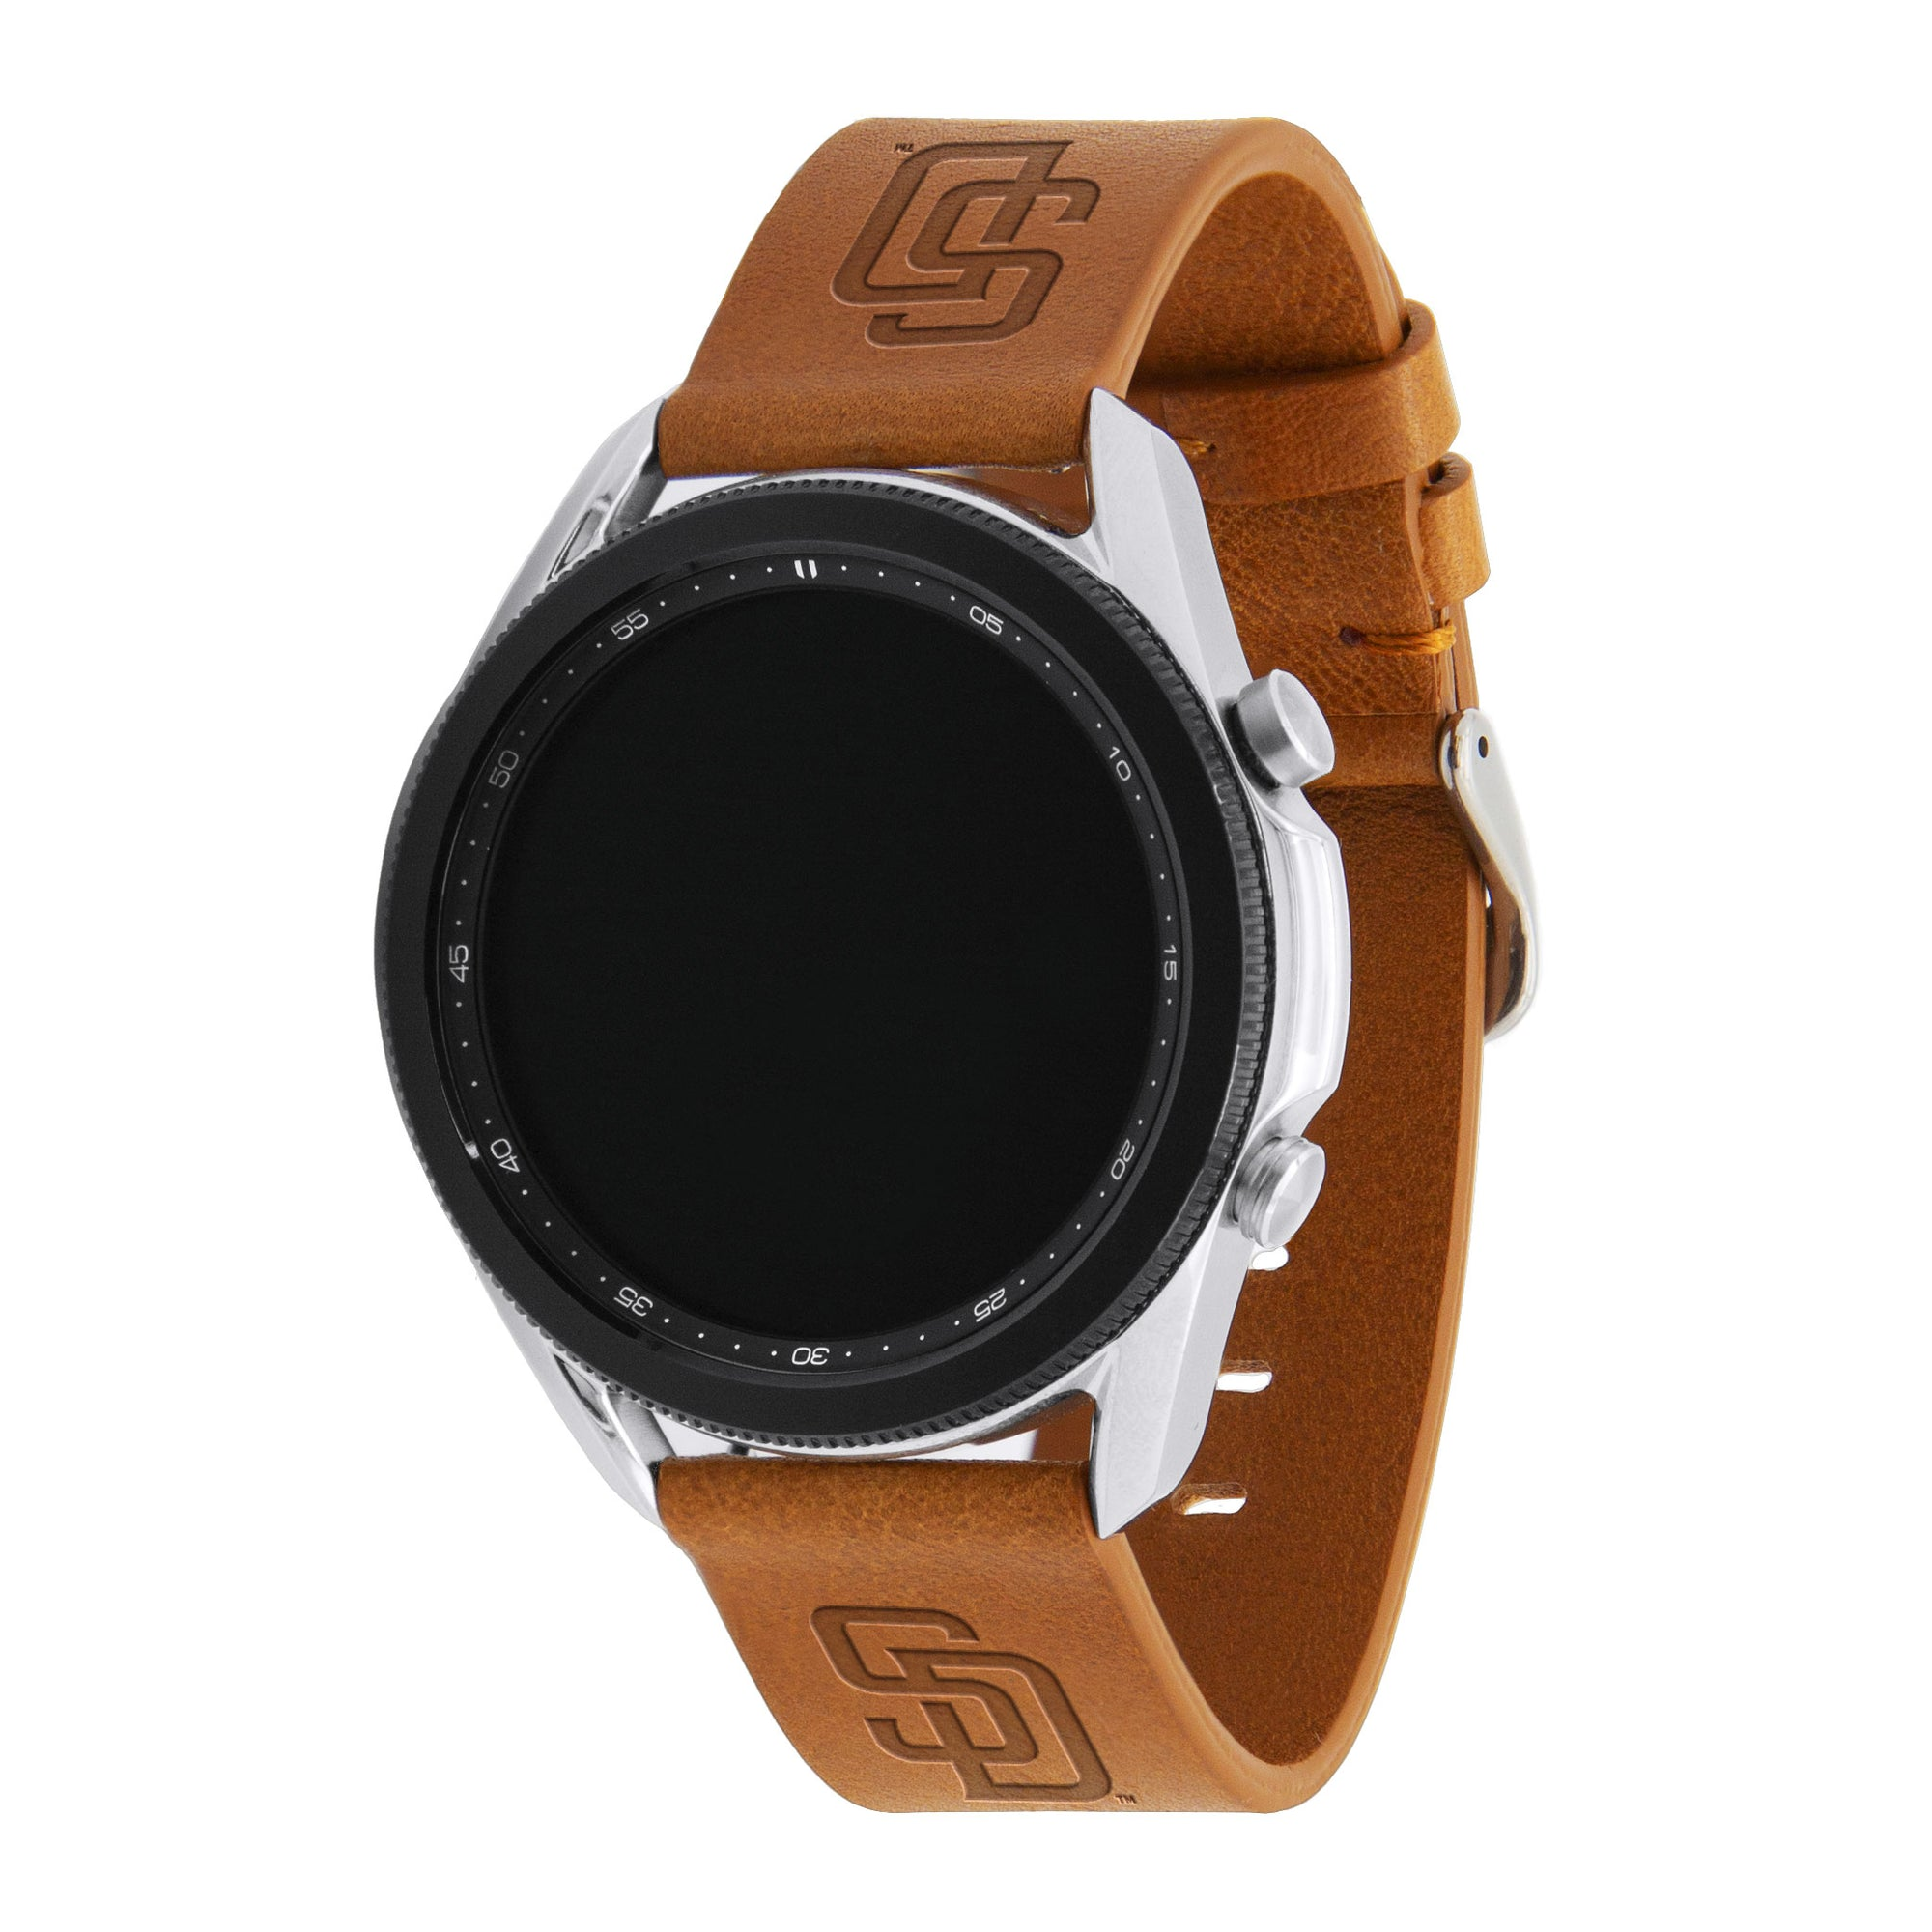 San Diego Padres Quick Change Leather Watch Bands - AffinityBands